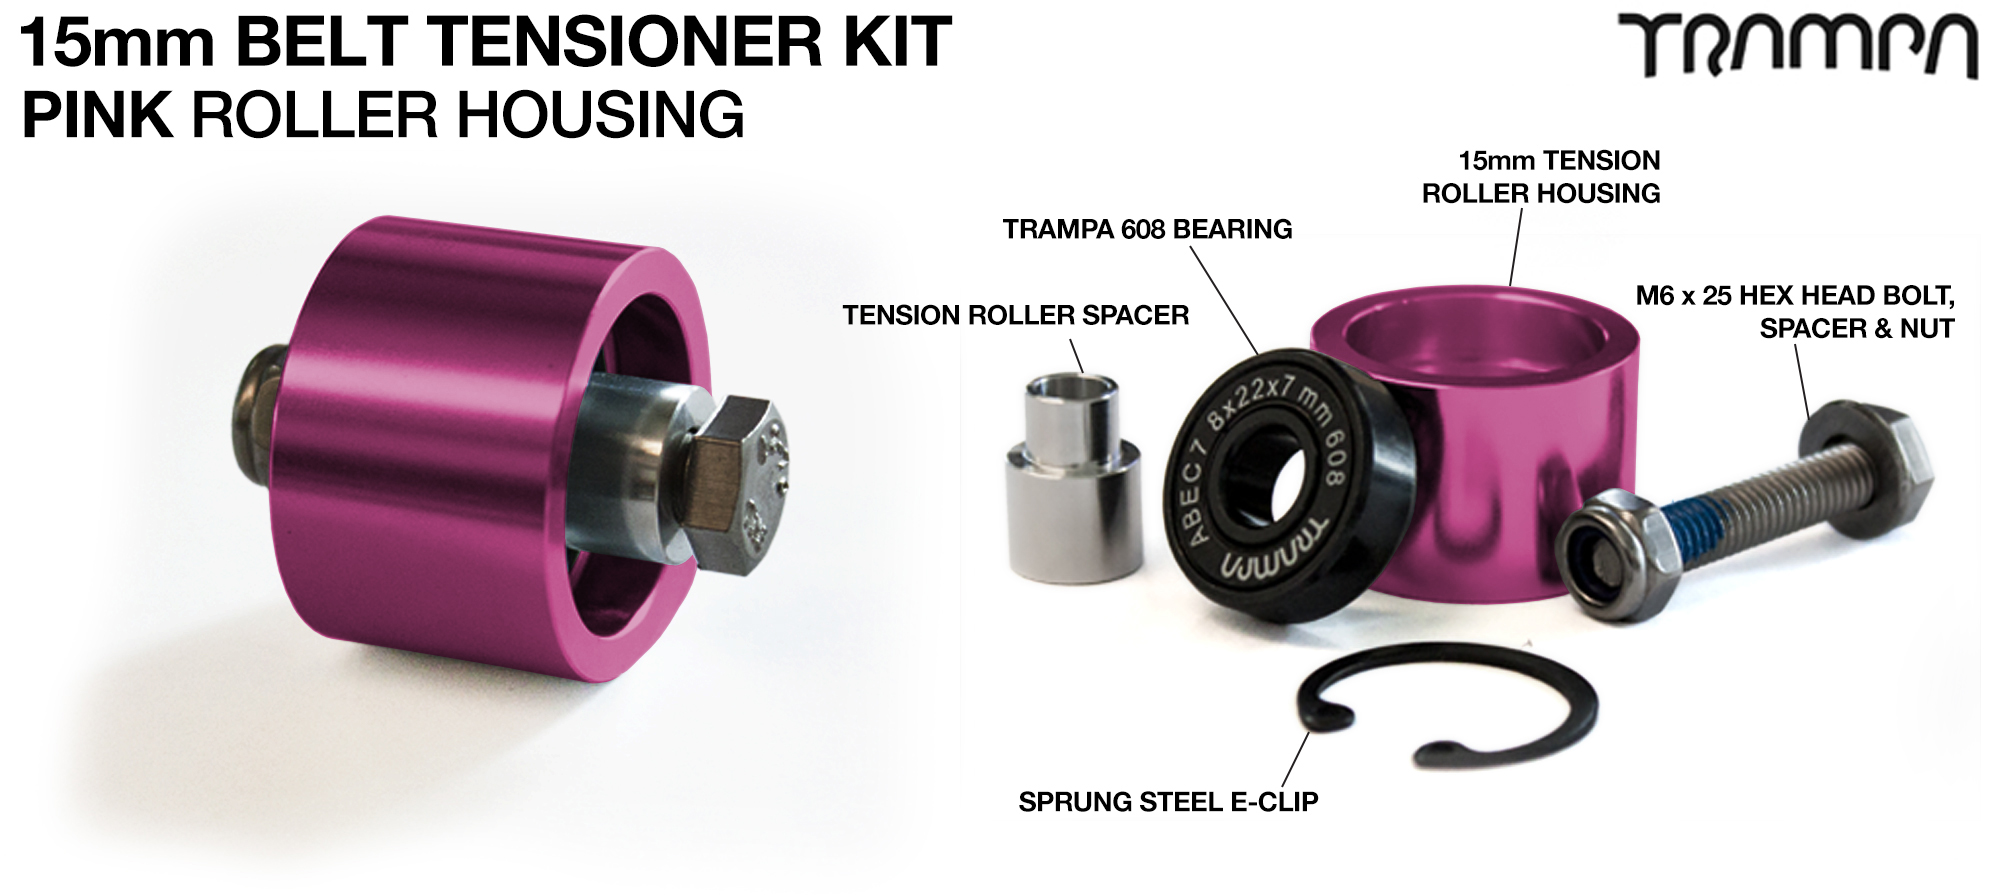 OPEN BELT DRIVE Belt Tensioning System for 15mm Belts - PINK